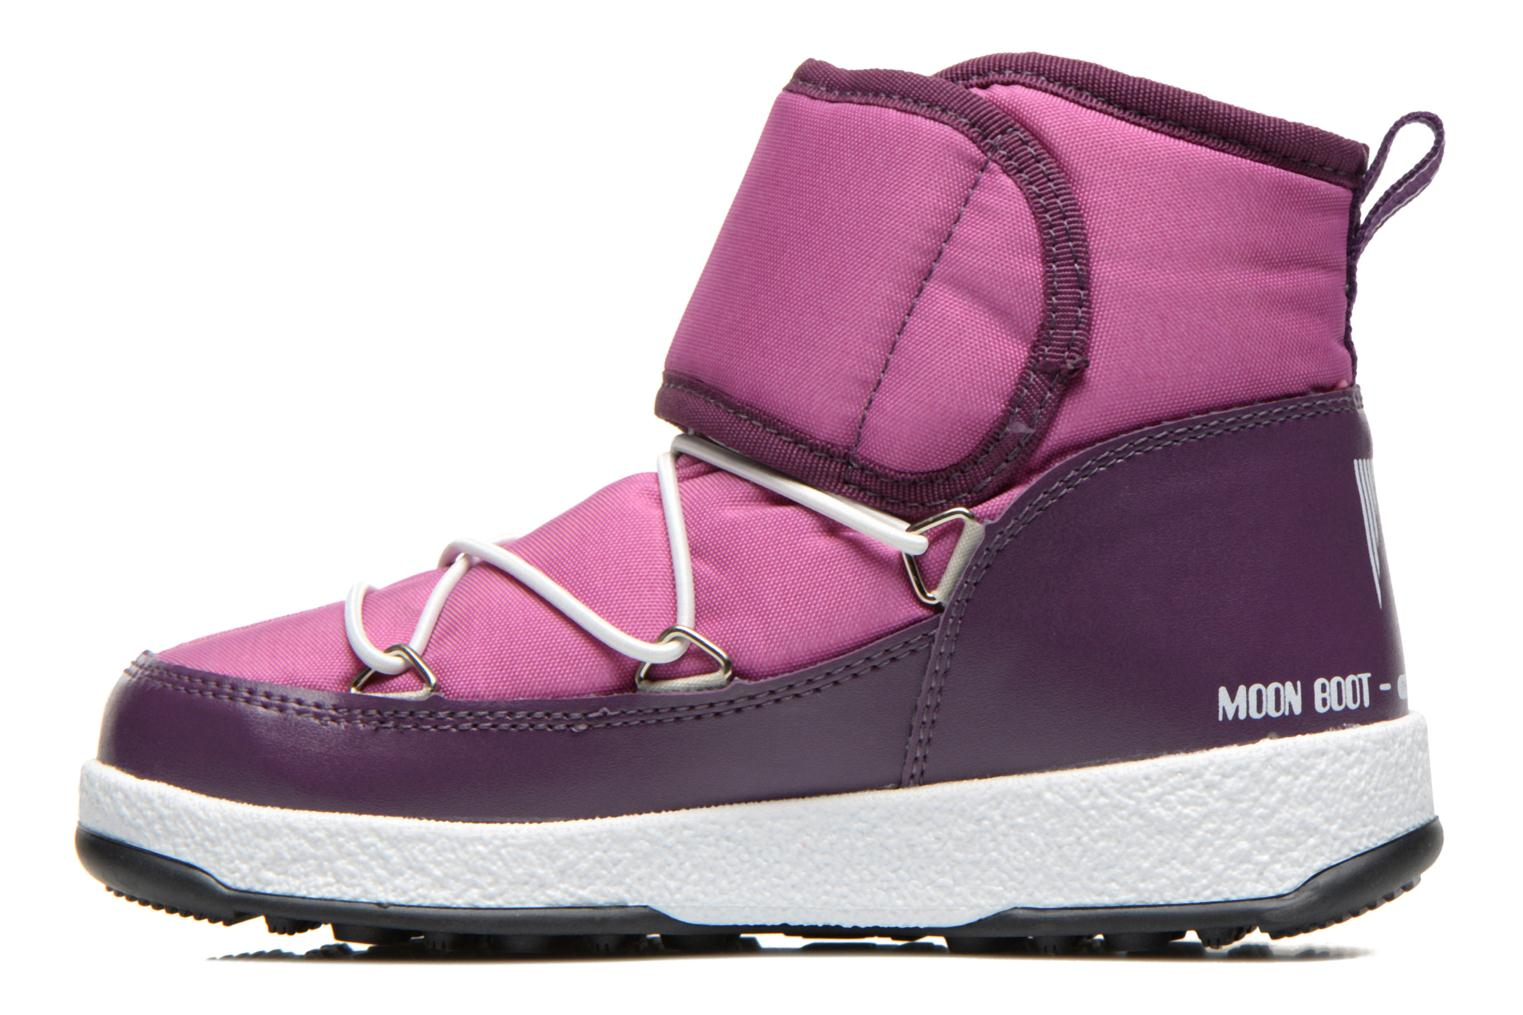 Moon Boot WE Jr Strap Orchidea-Viola